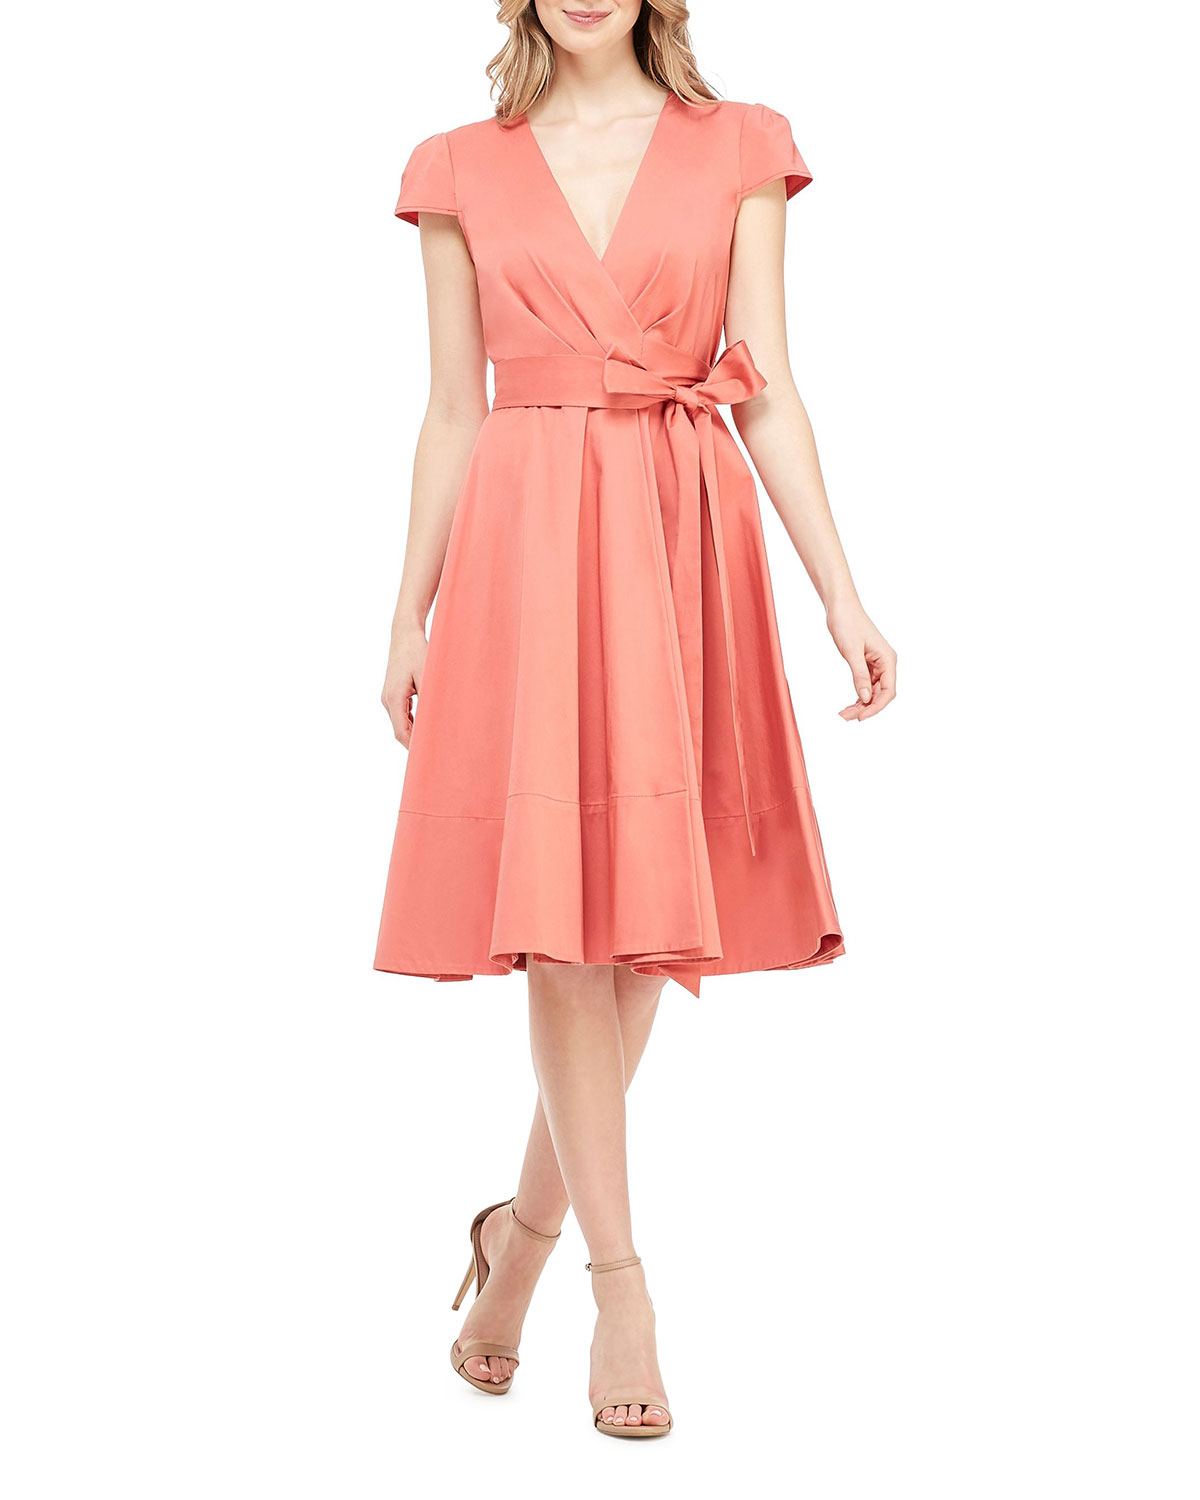 cotton beach dresses with sleeves